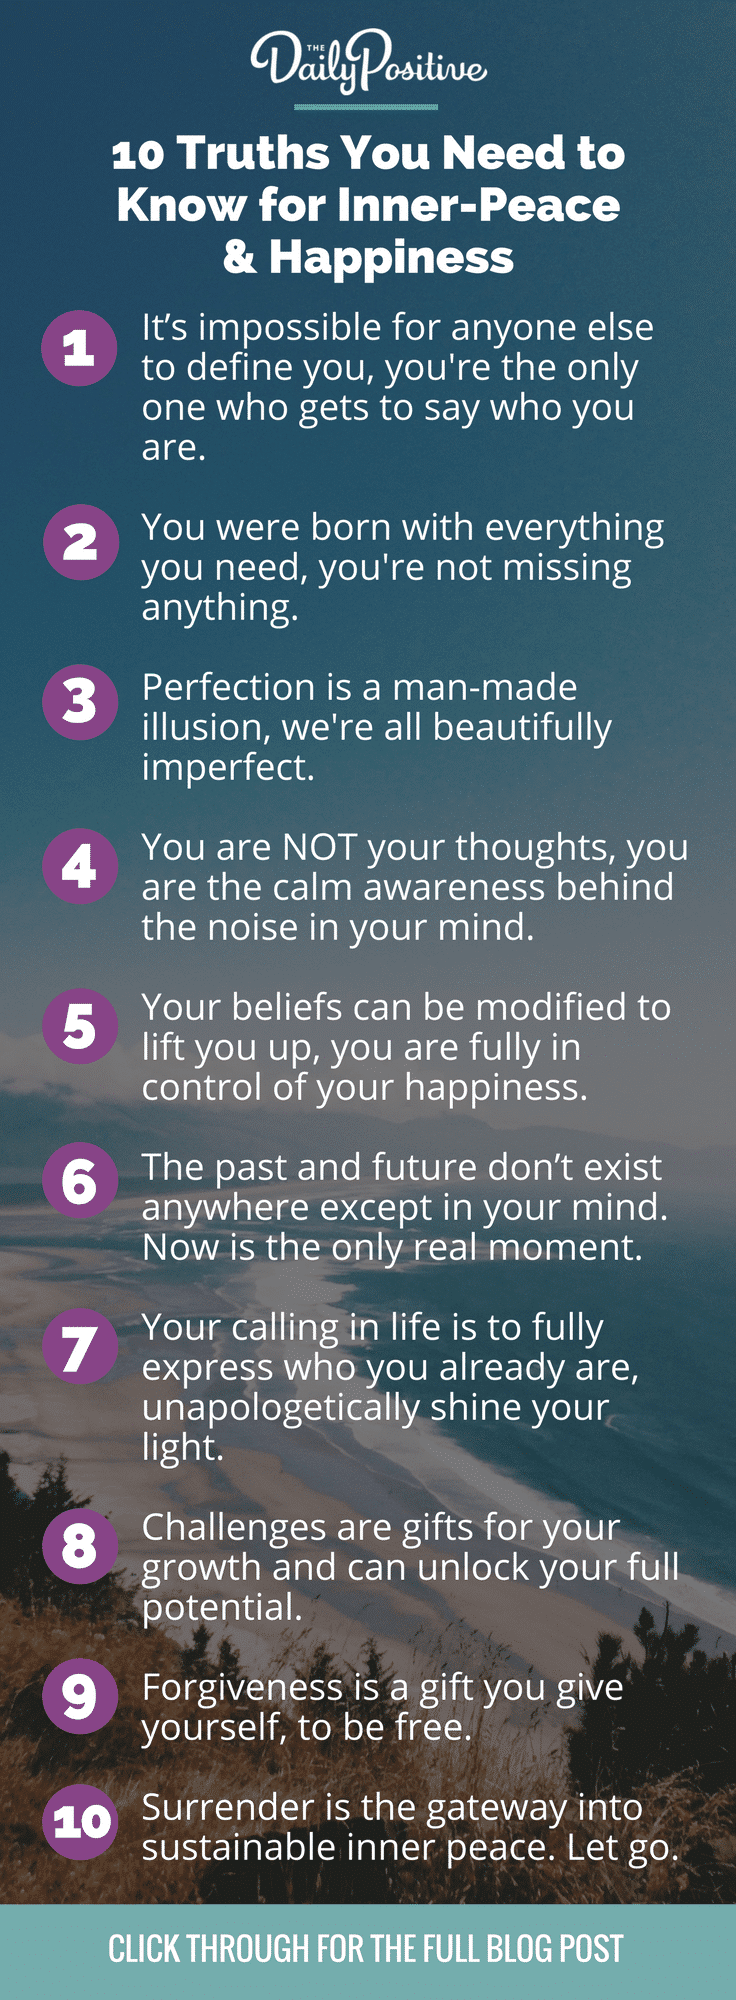 10 Truths You Need to Know for Peace and Happiness - The Daily Positive